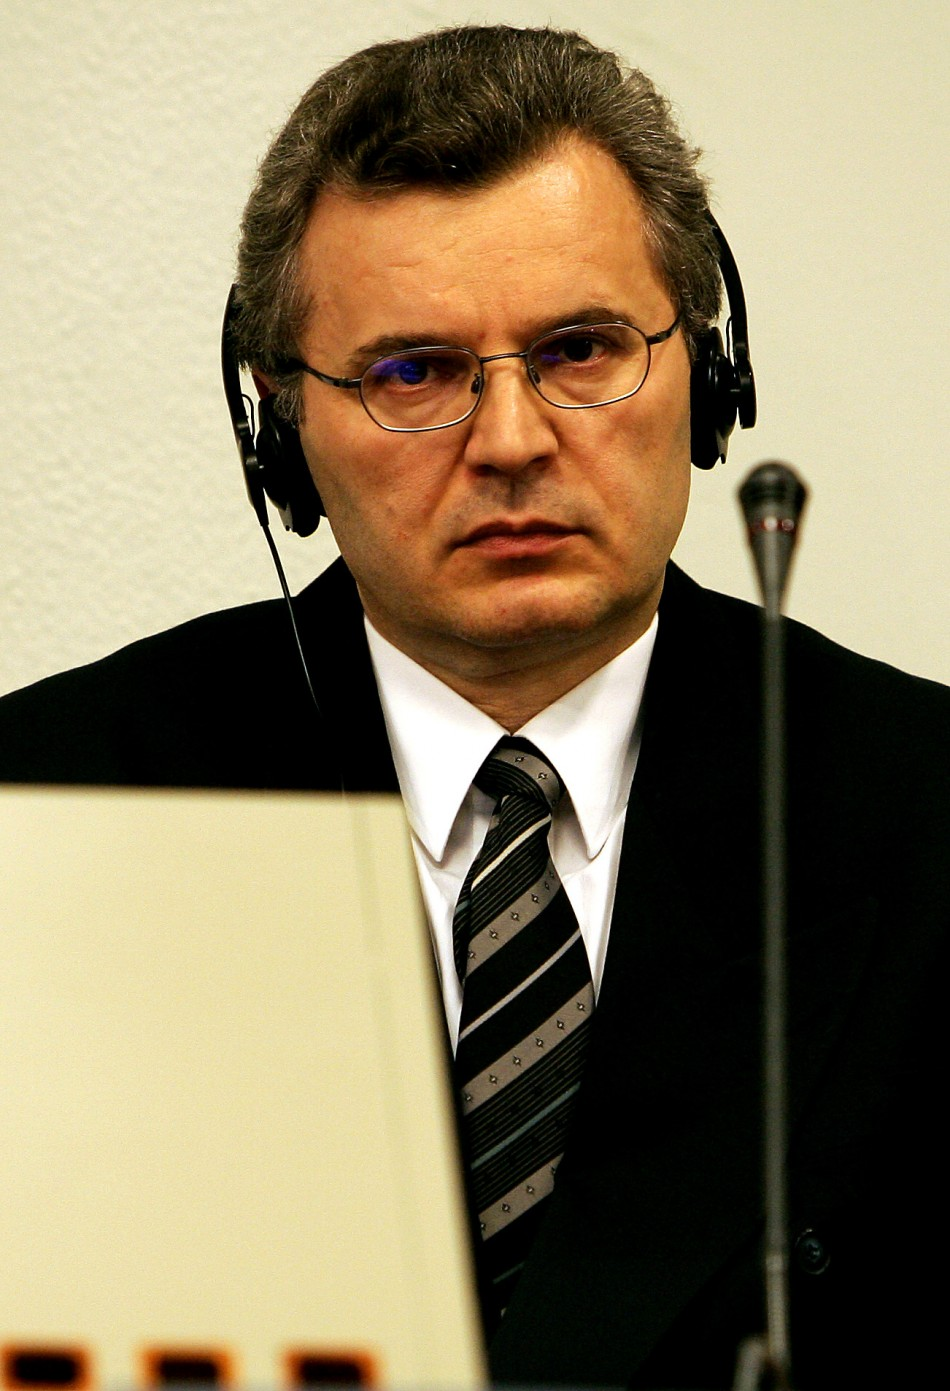 Croatian Serb leader Babic sits in the court room of the ICTY for his appeals judgement in The Hague.